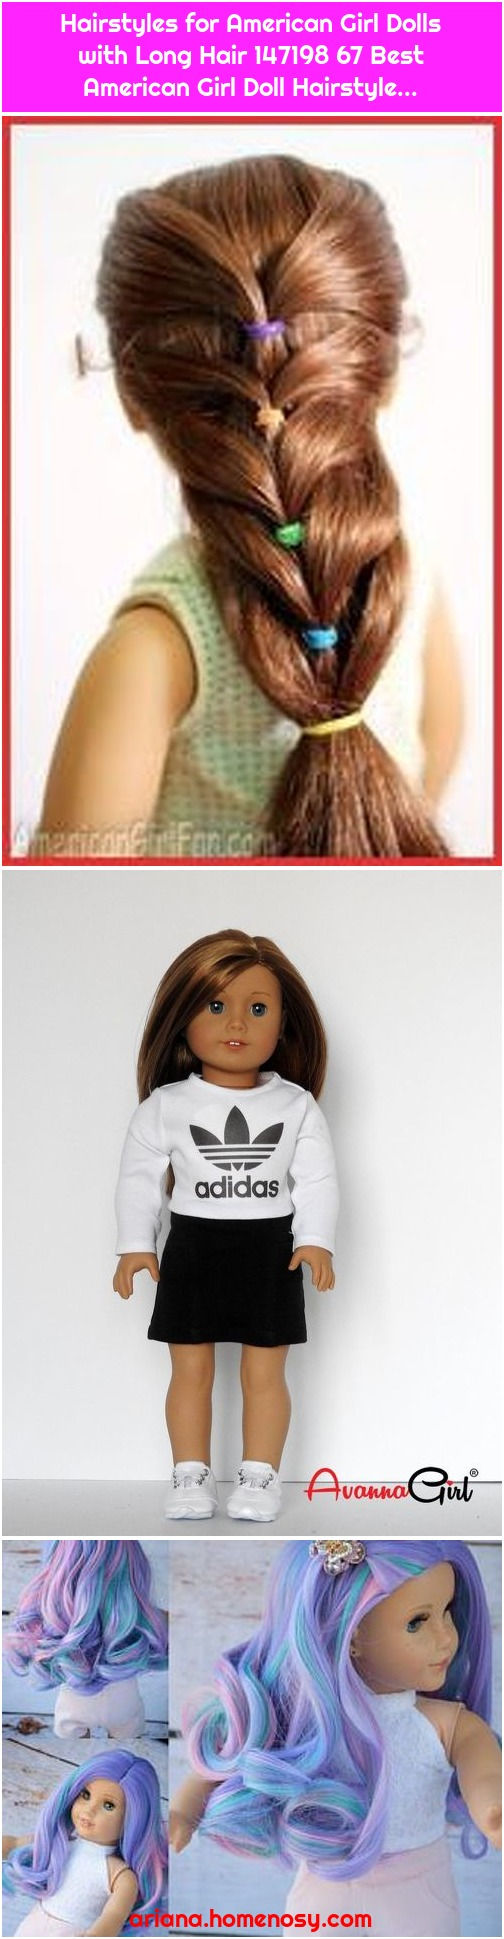 Hairstyles for American Girl Dolls with Long Hair 147198 67 Best American Girl Doll Hairstyle...